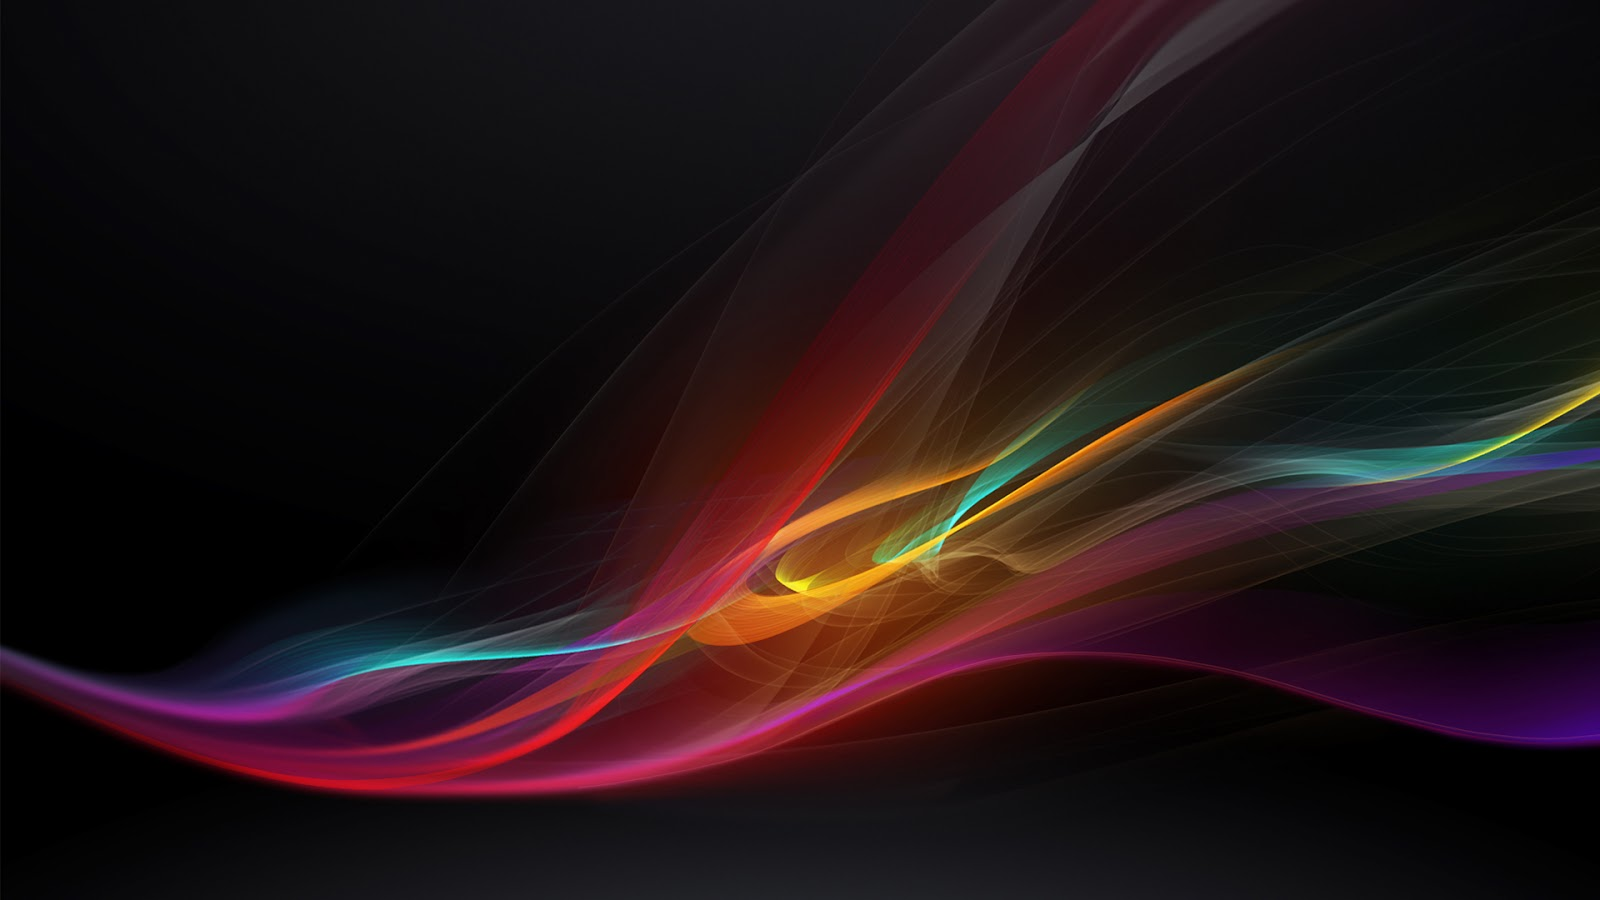 Hd Backgroumds: Sony Vaio HD Wallpapers